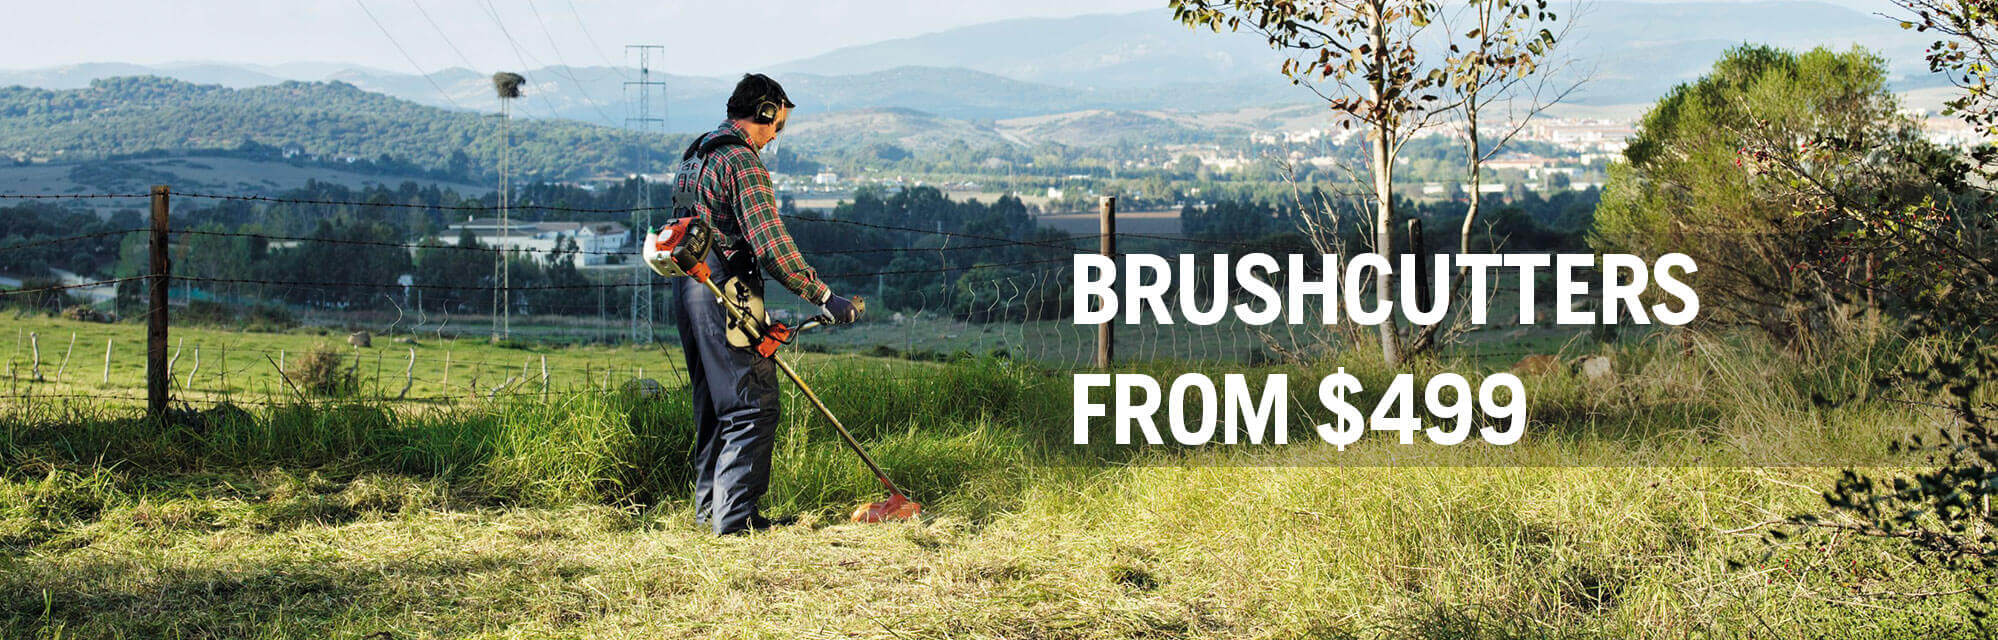 Spring Brushcutters